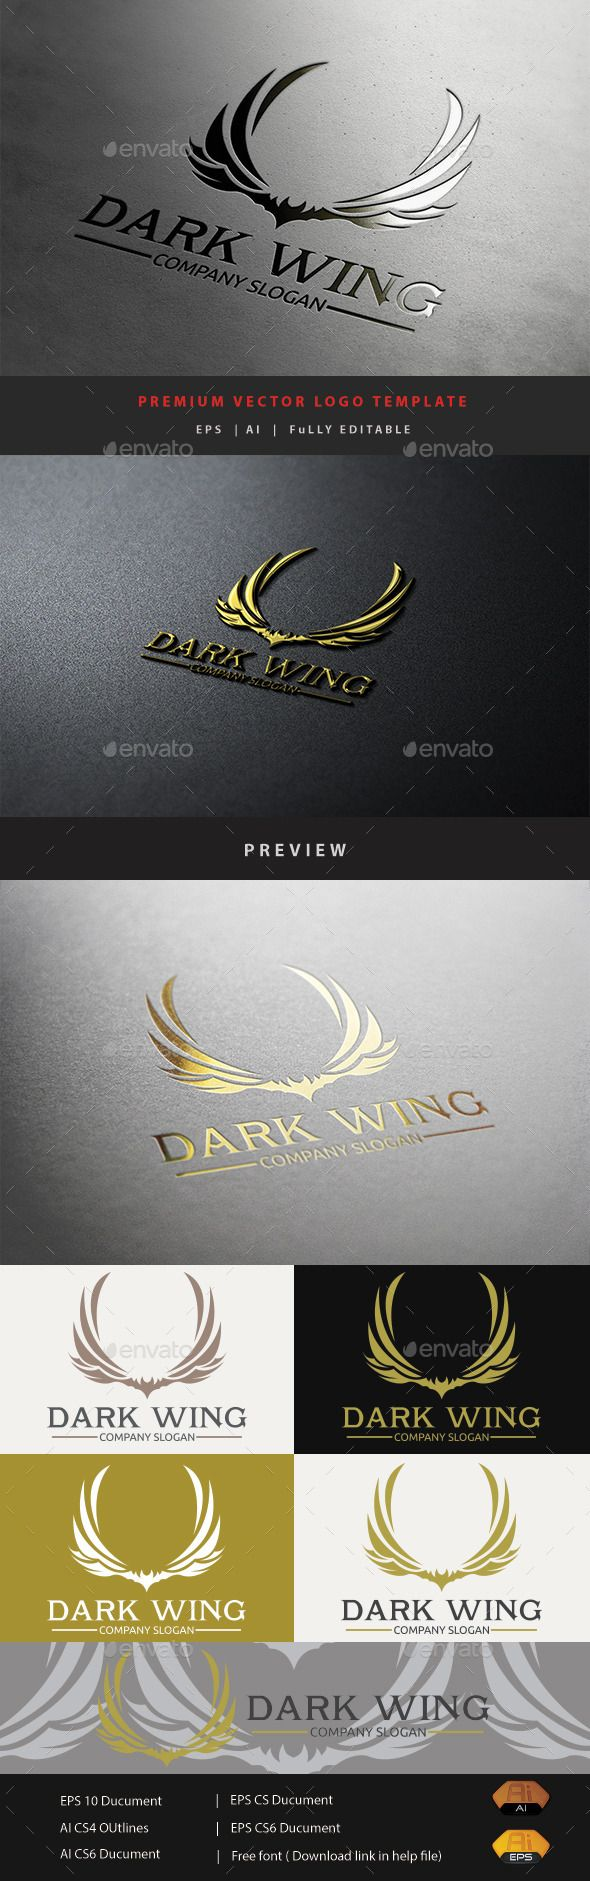 Dark Wing Logo Tempalte #design #logotype Download: http://graphicriver.net/item/dark-wing/10929488?ref=ksioks